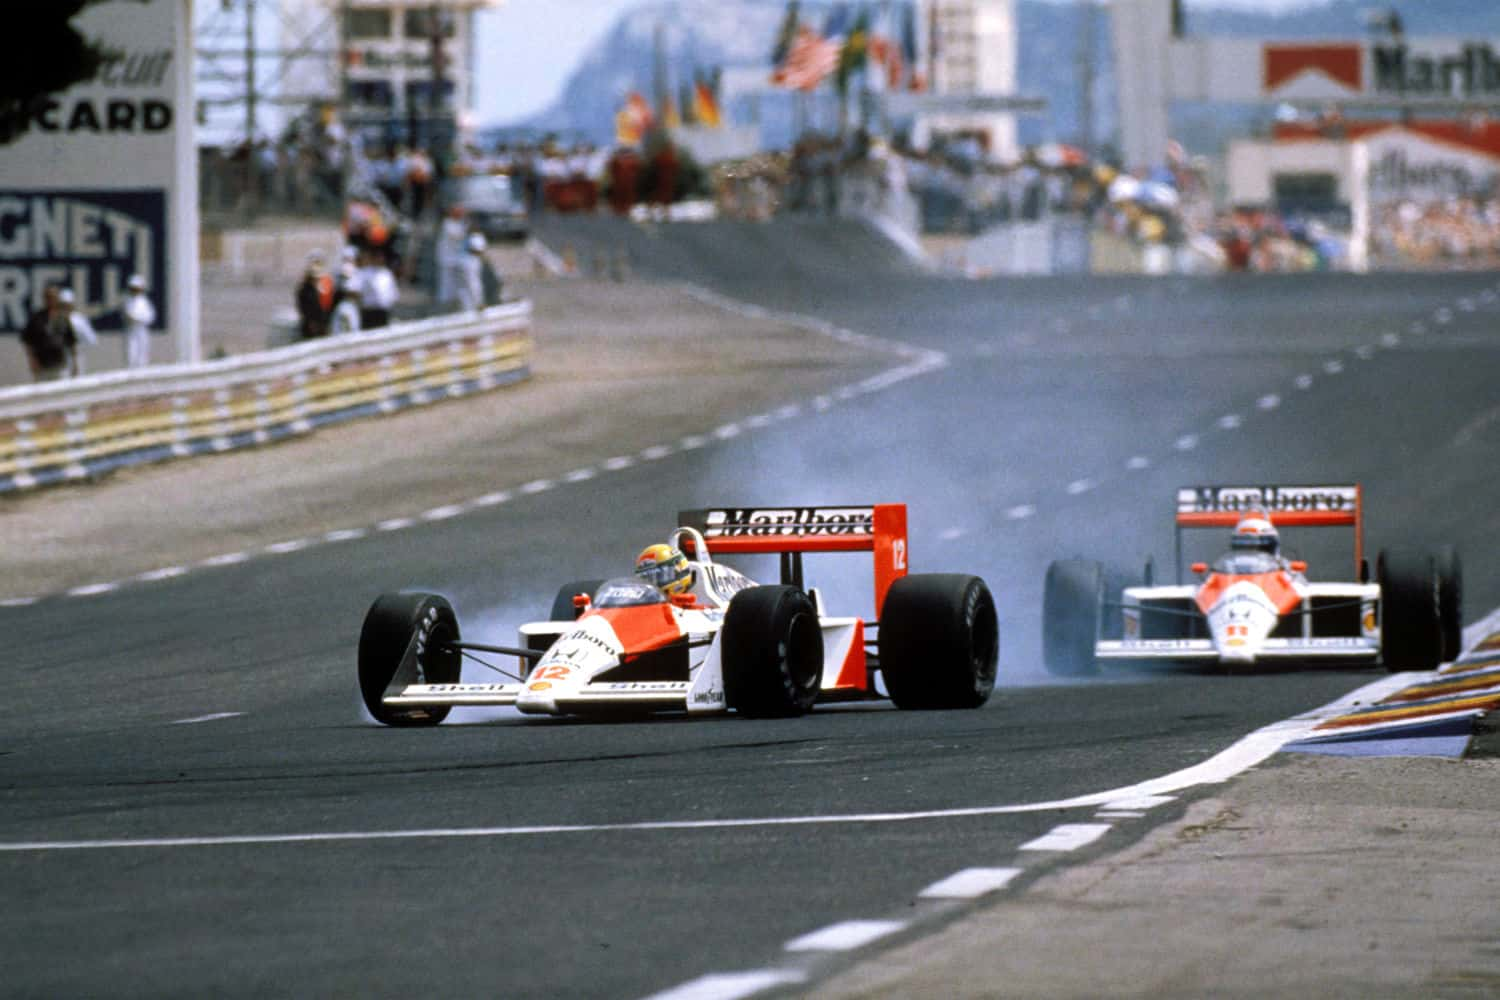 Ayrton Senna leads Alain Prost French GP F1 1988 Paul Ricard Photo F1world